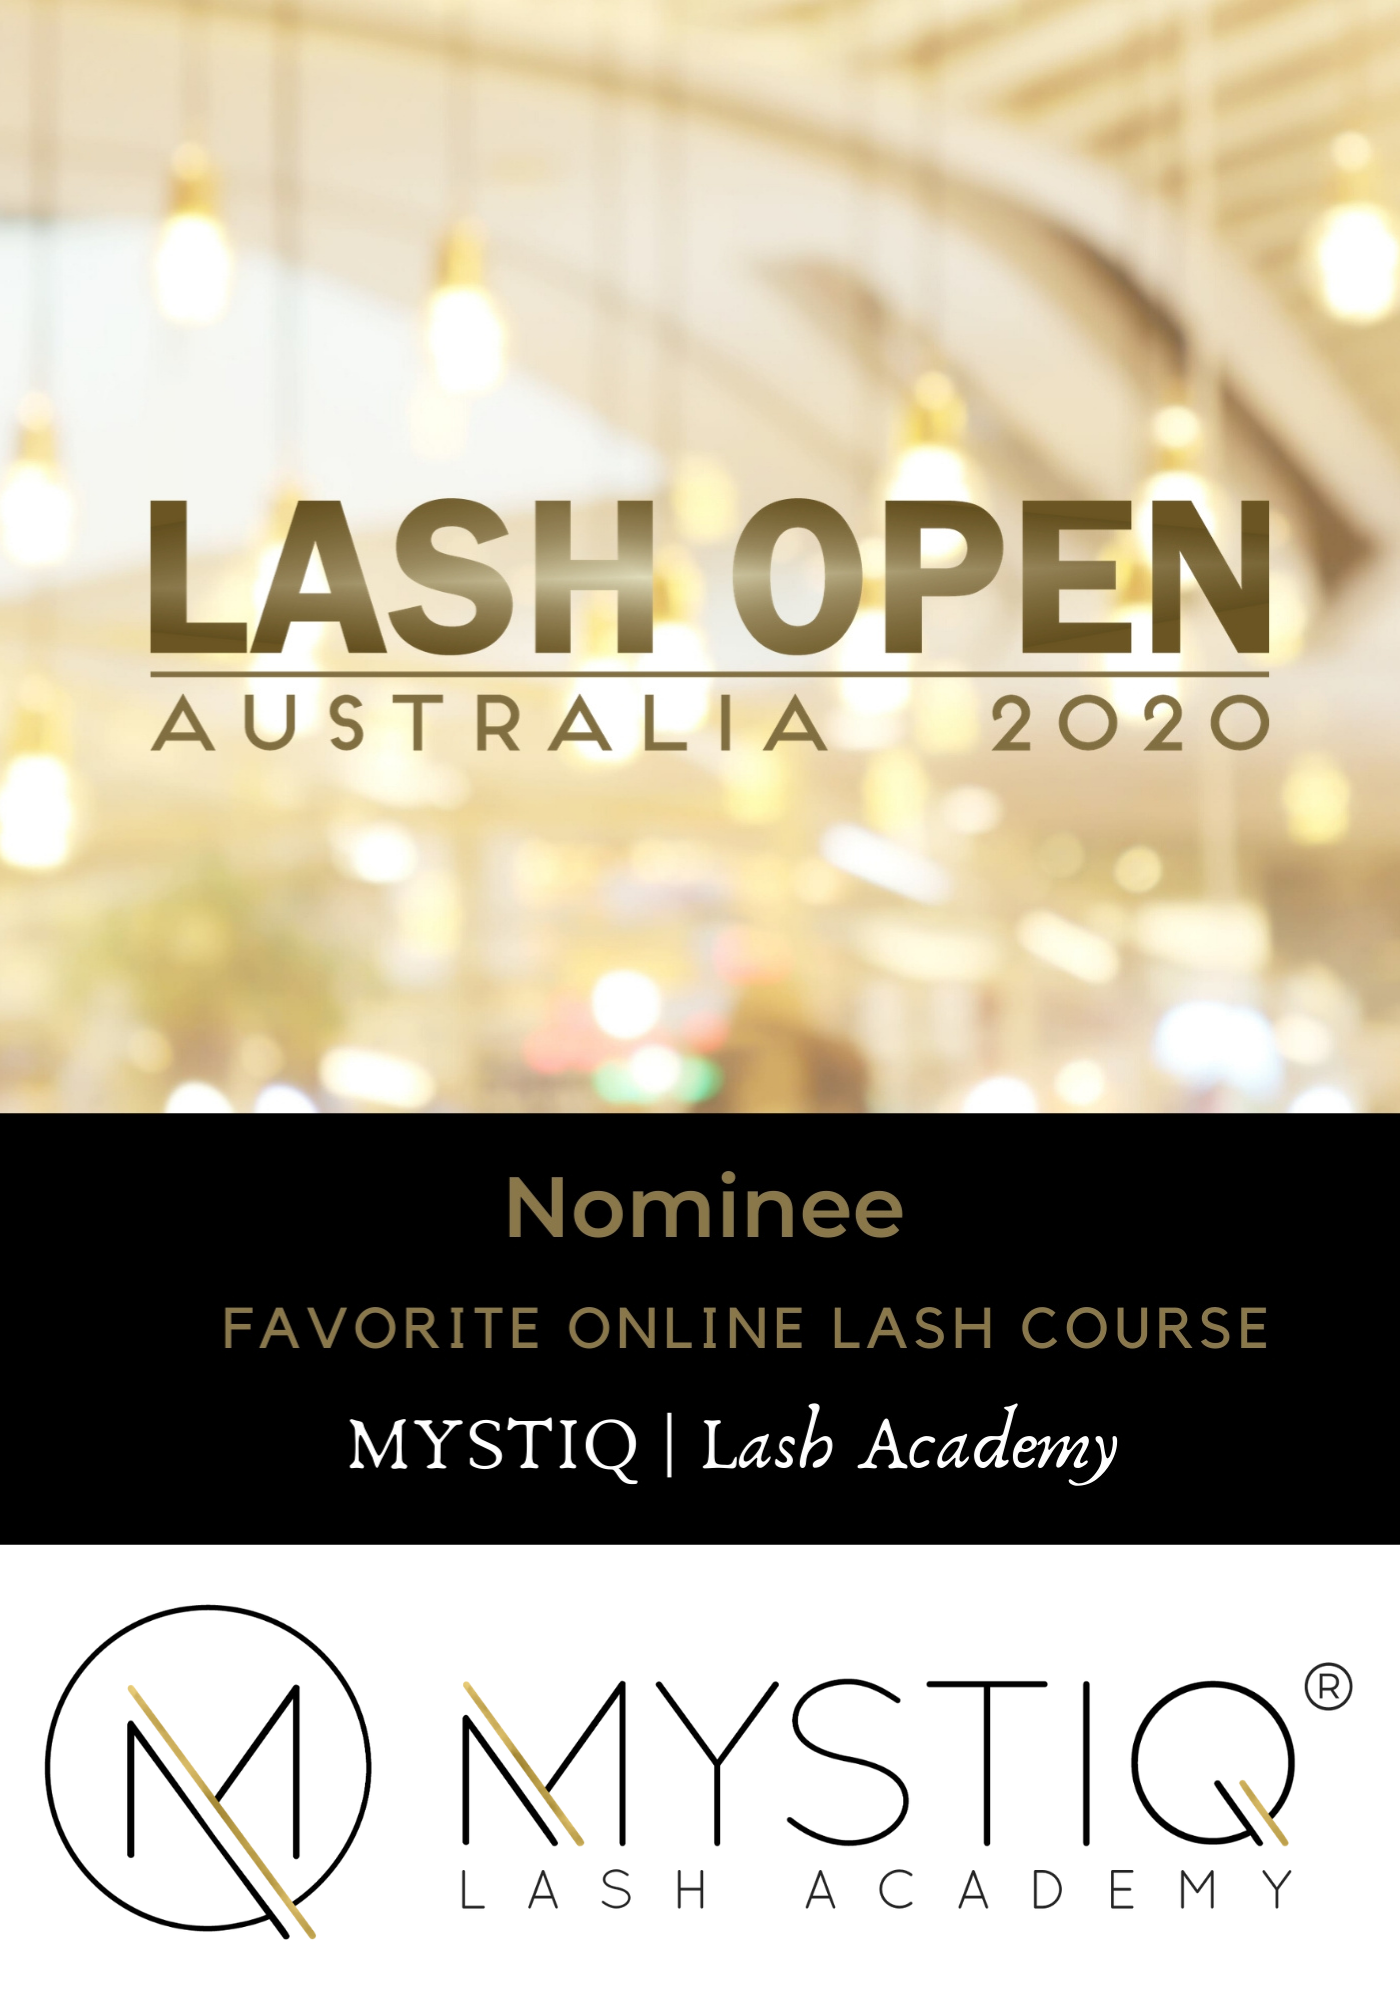 Lash Open 2020 Award Nomination - Online Lash Course